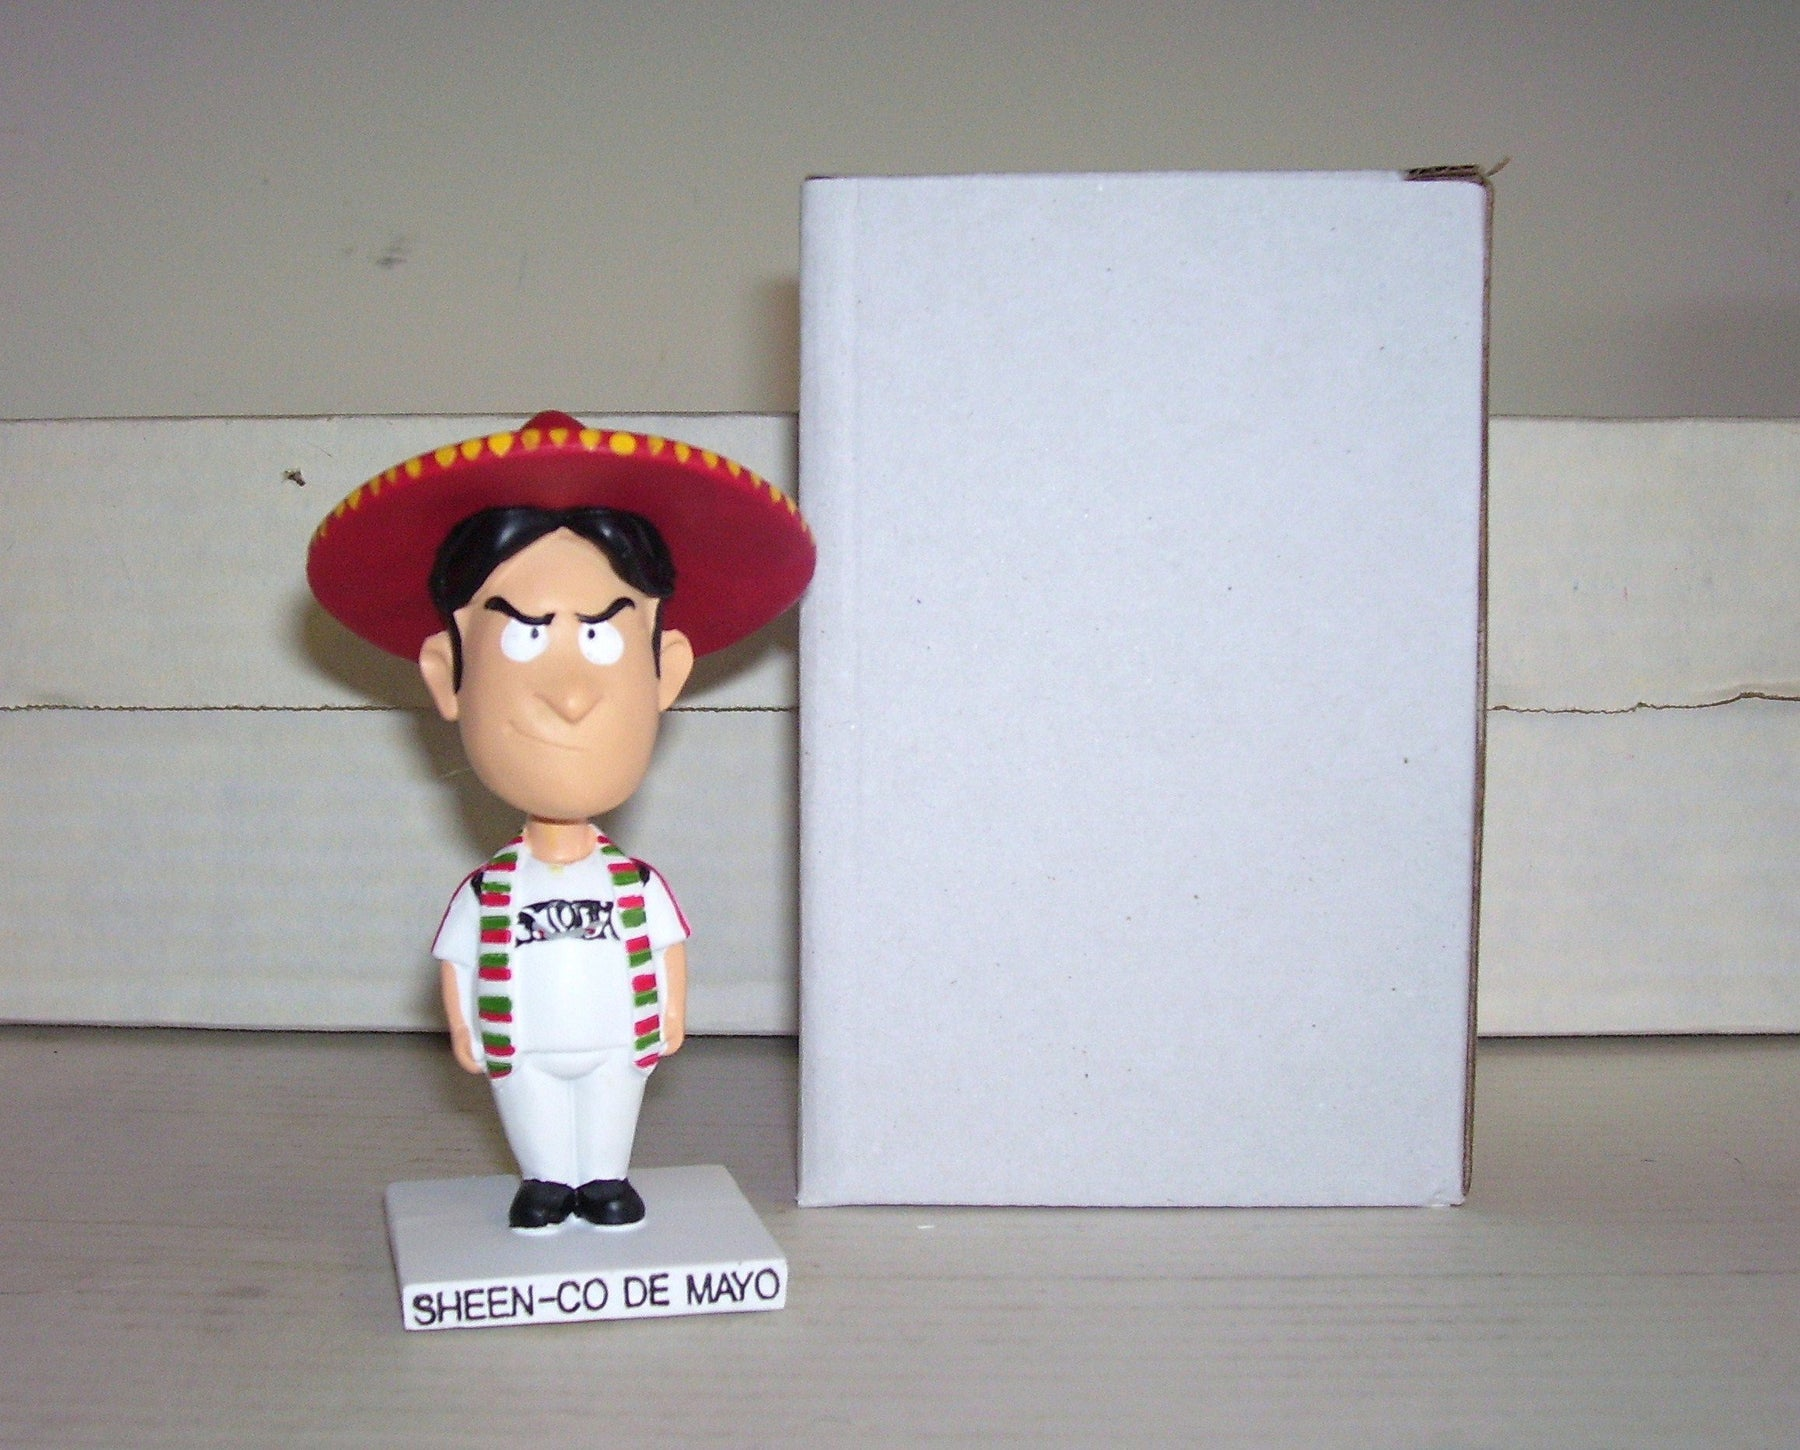 Charlie Sheen Sheen-Co De Mayo Lake Elsinore Storm Bobblehead